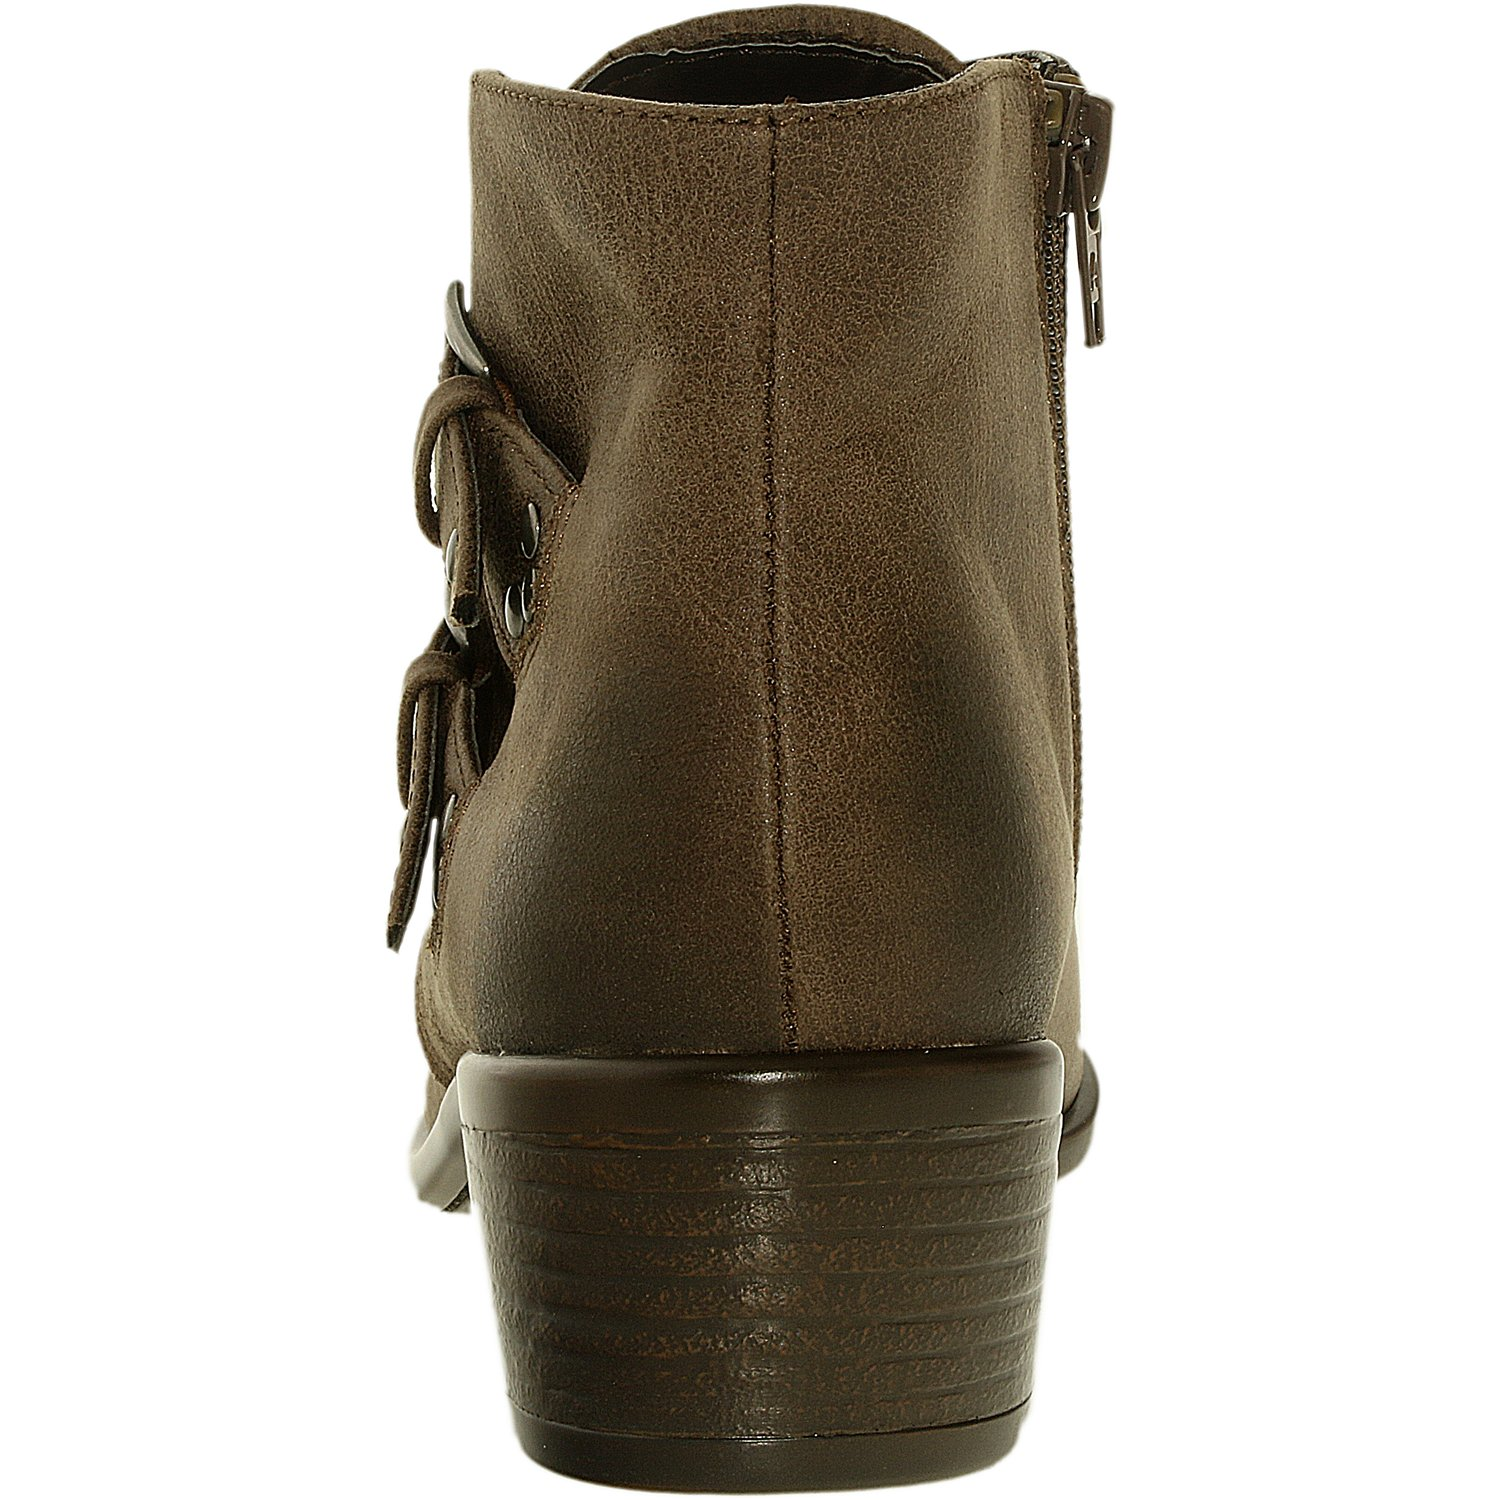 Aerosoles Women's Urban Myth Leather Ankle-High Leather Boot